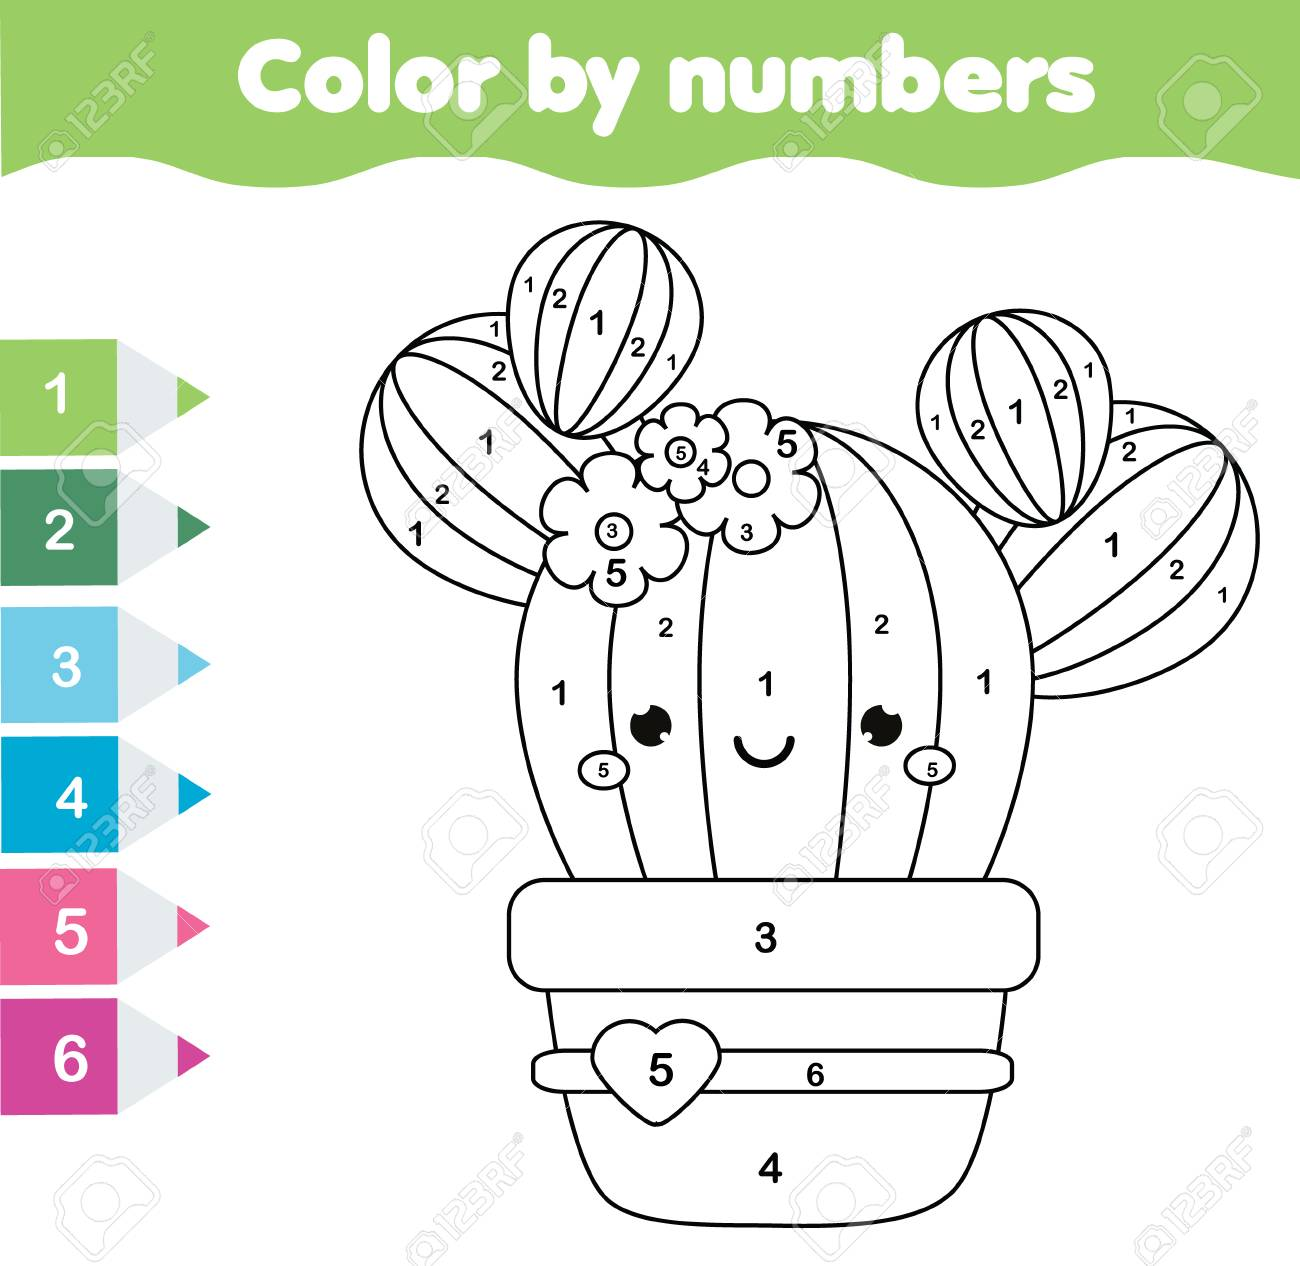 image regarding Free Printable Cactus Coloring Pages named Small children insightful recreation. Coloring web page with adorable cactus. Colour..